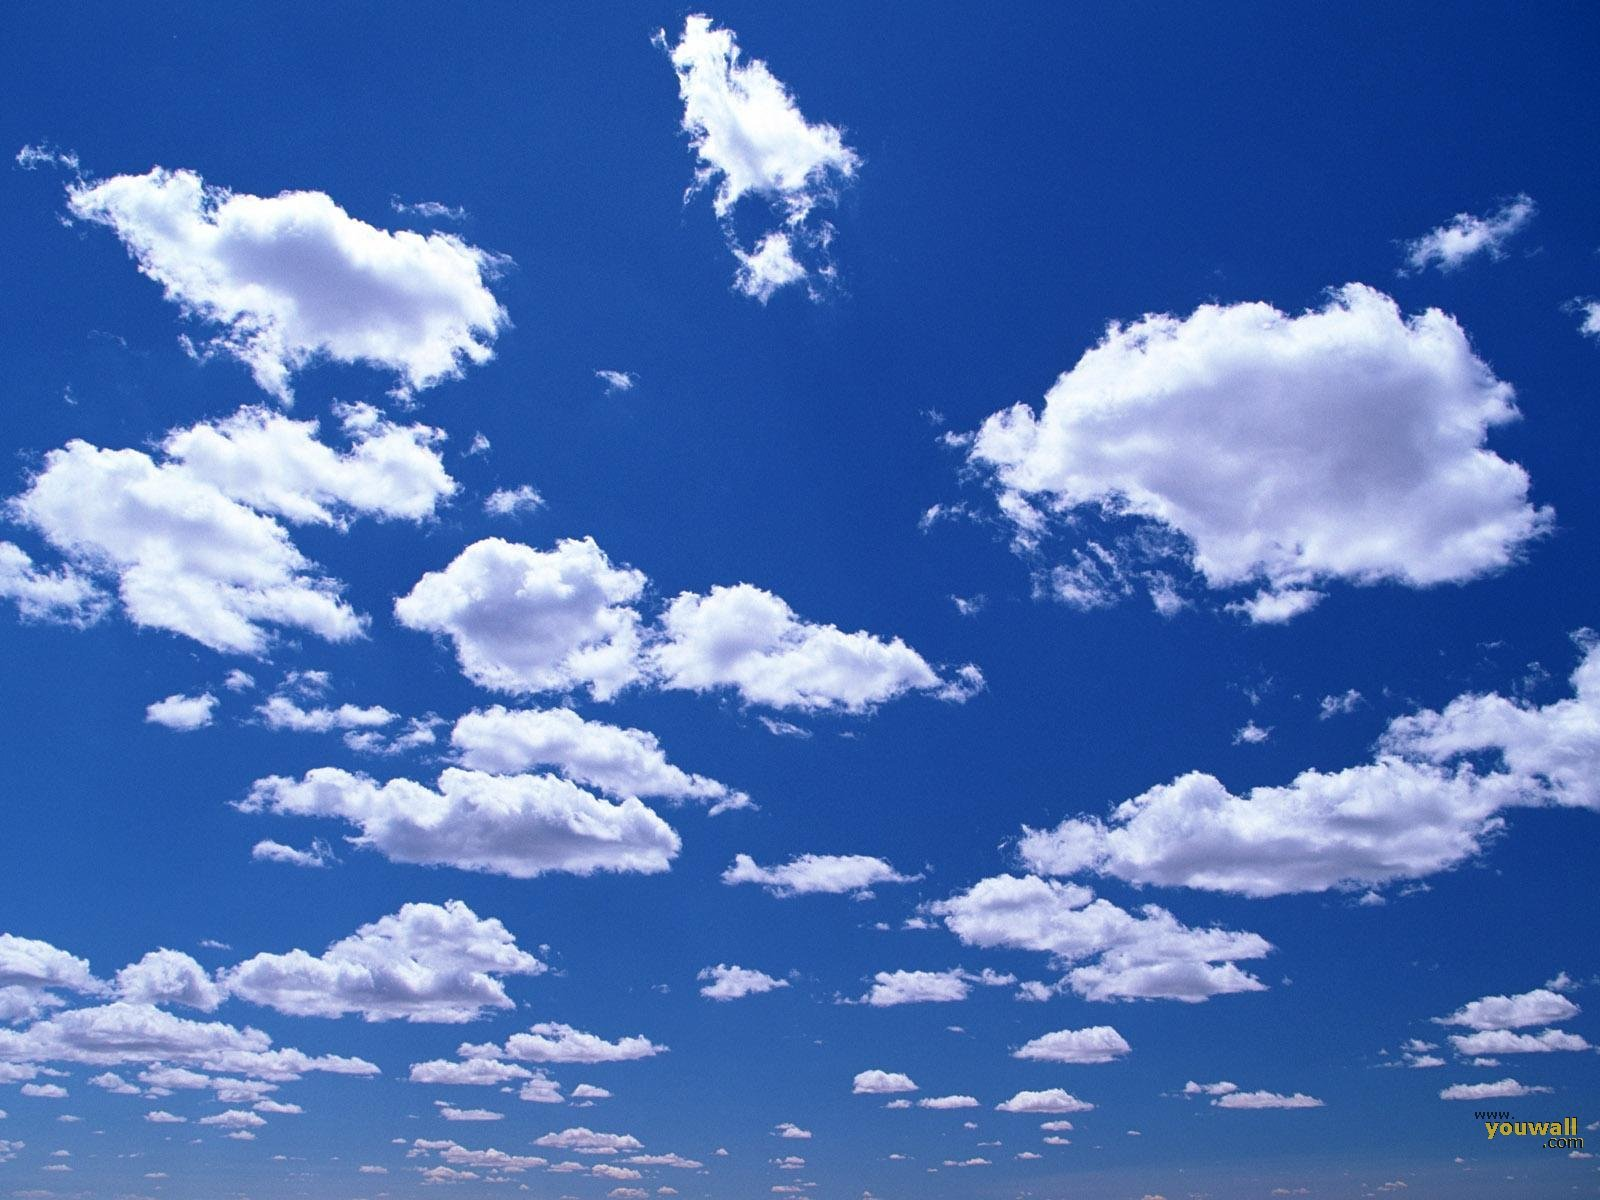 Sky Pictures With Clouds Wallpaper